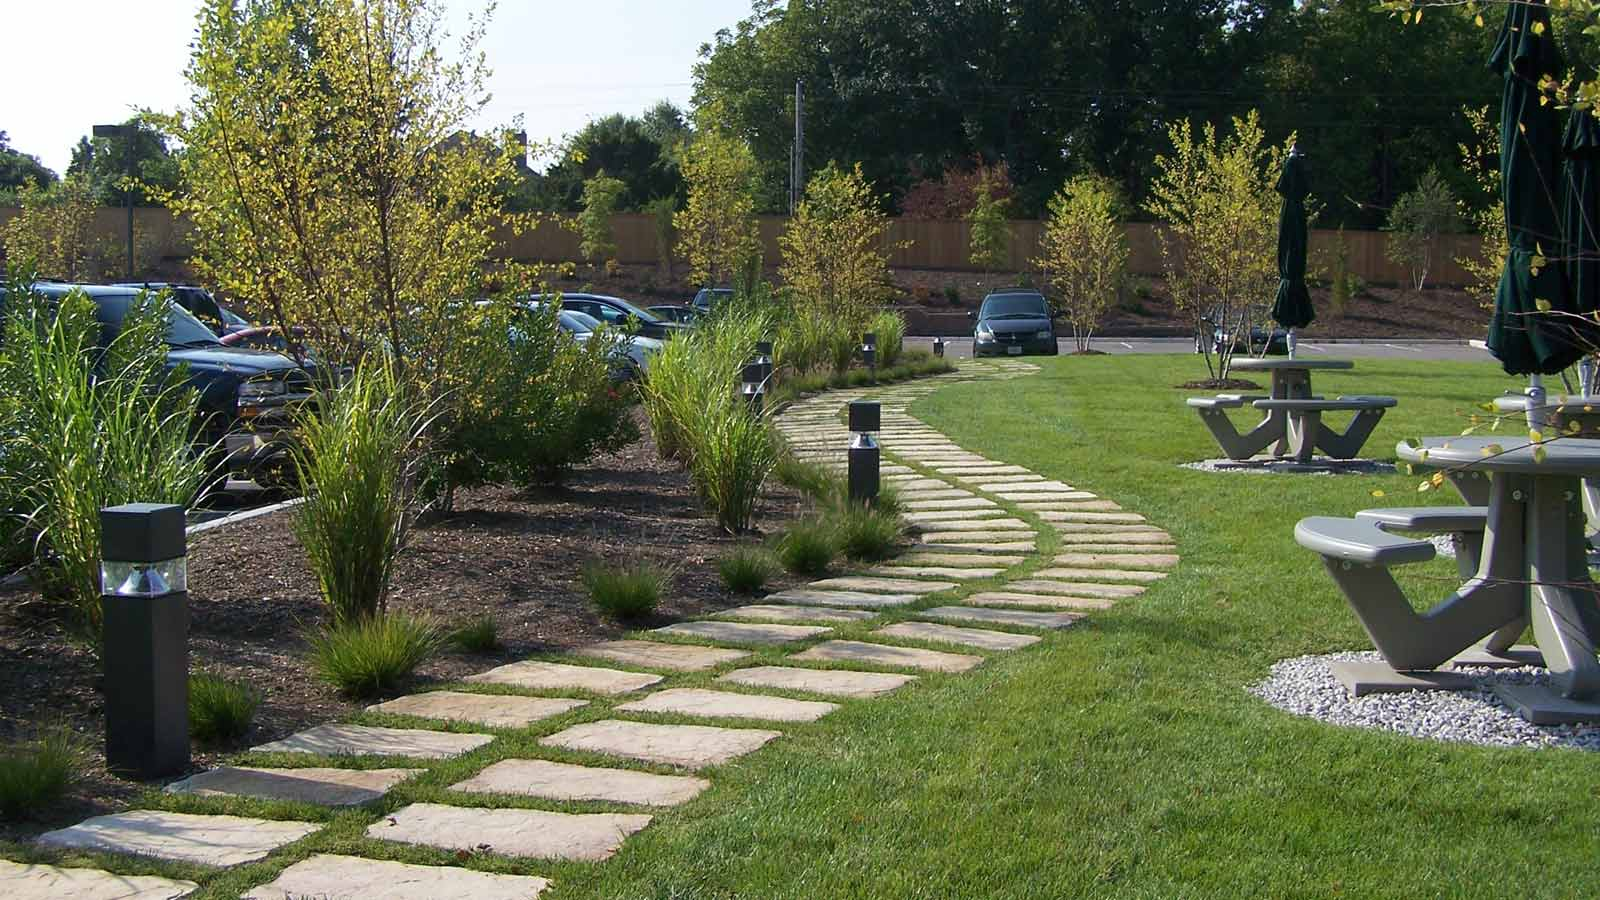 Commercial Landscaping-Arlington TX Landscape Designs & Outdoor Living Areas-We offer Landscape Design, Outdoor Patios & Pergolas, Outdoor Living Spaces, Stonescapes, Residential & Commercial Landscaping, Irrigation Installation & Repairs, Drainage Systems, Landscape Lighting, Outdoor Living Spaces, Tree Service, Lawn Service, and more.